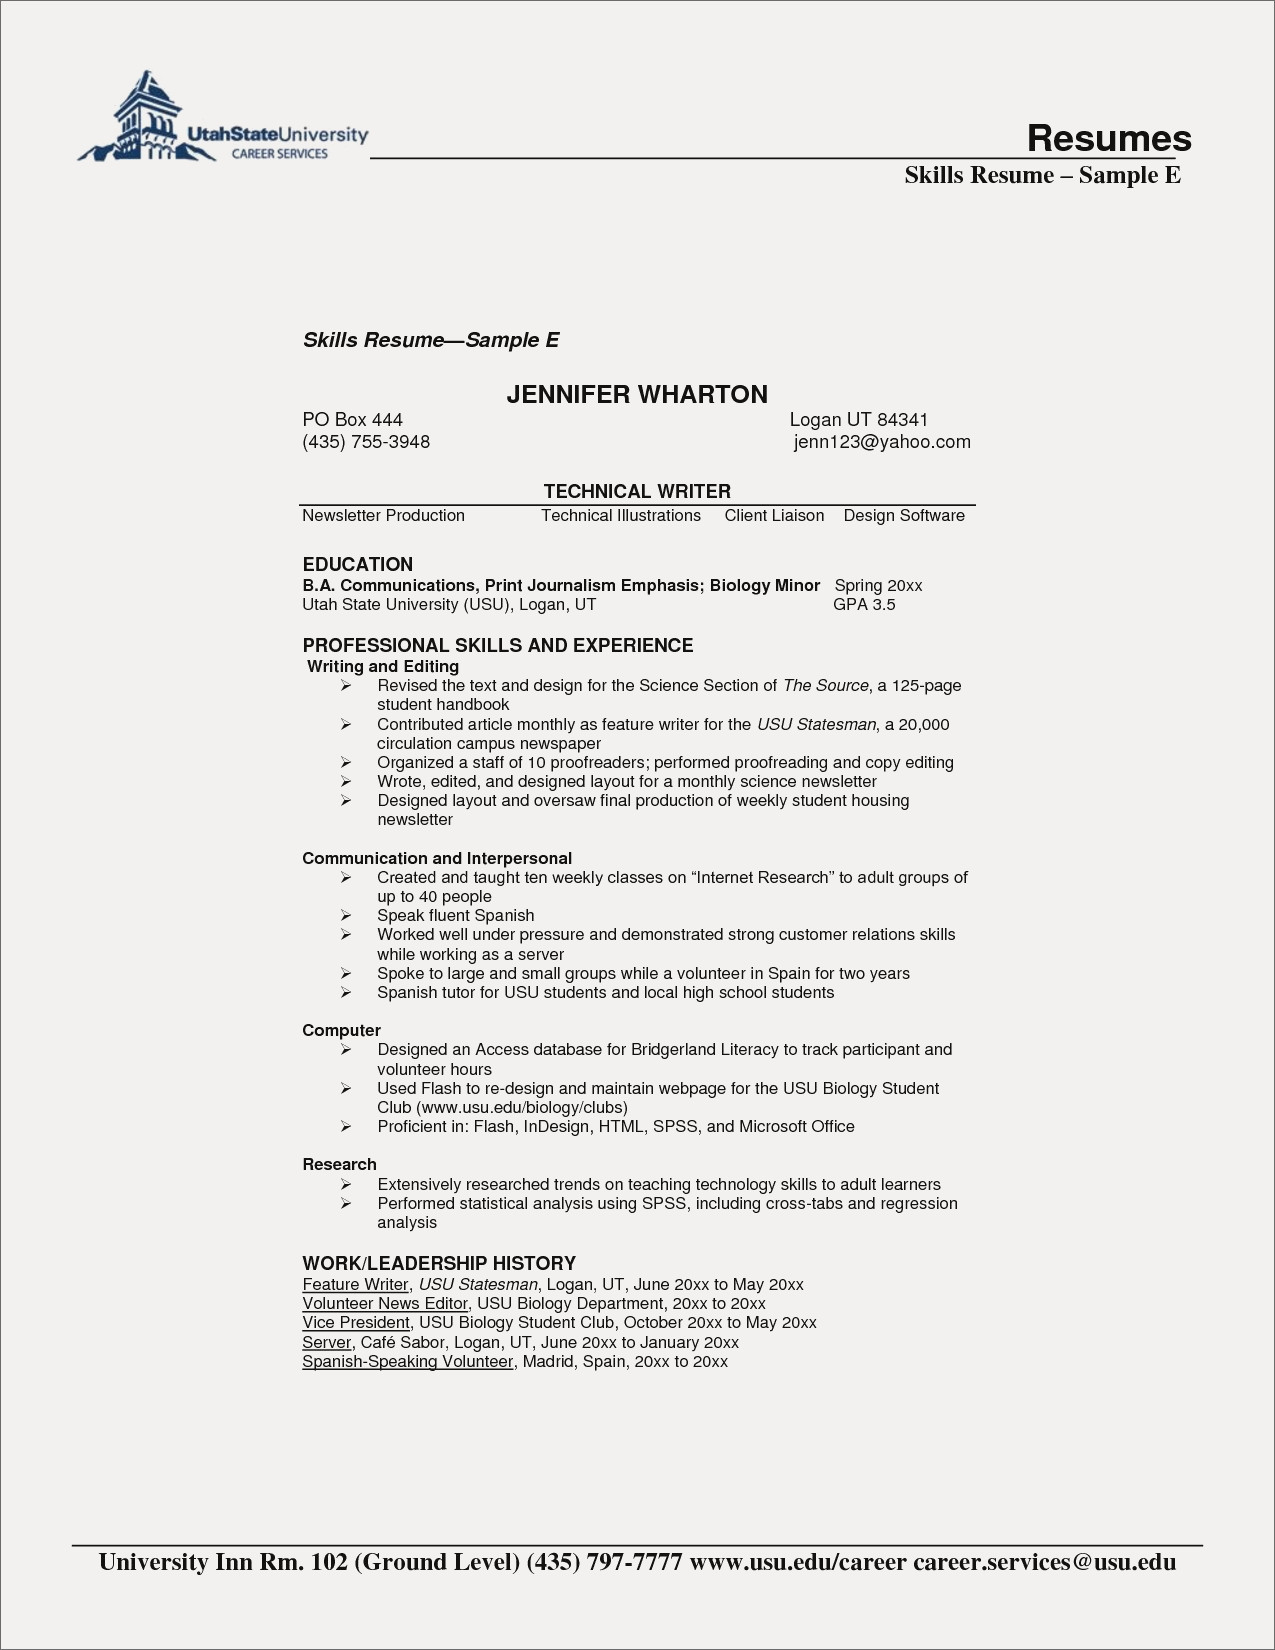 File Copy with Resume - Cheap Resumes Fresh Puter Skills Example Unique Examples Resumes